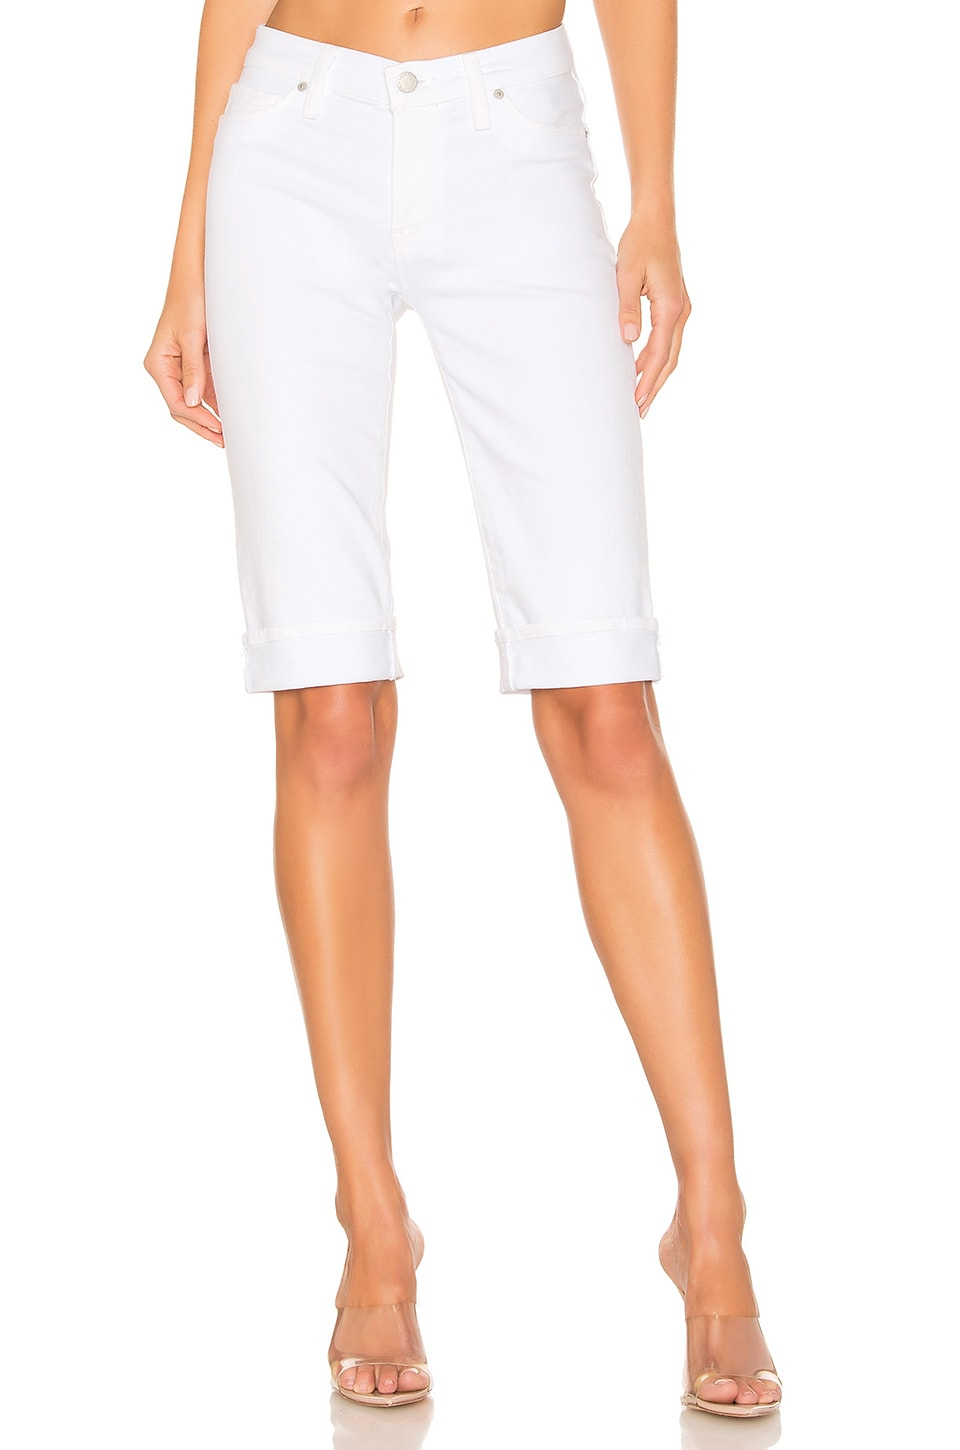 Hudson Jeans Amelia Cuffed Knee Short in White